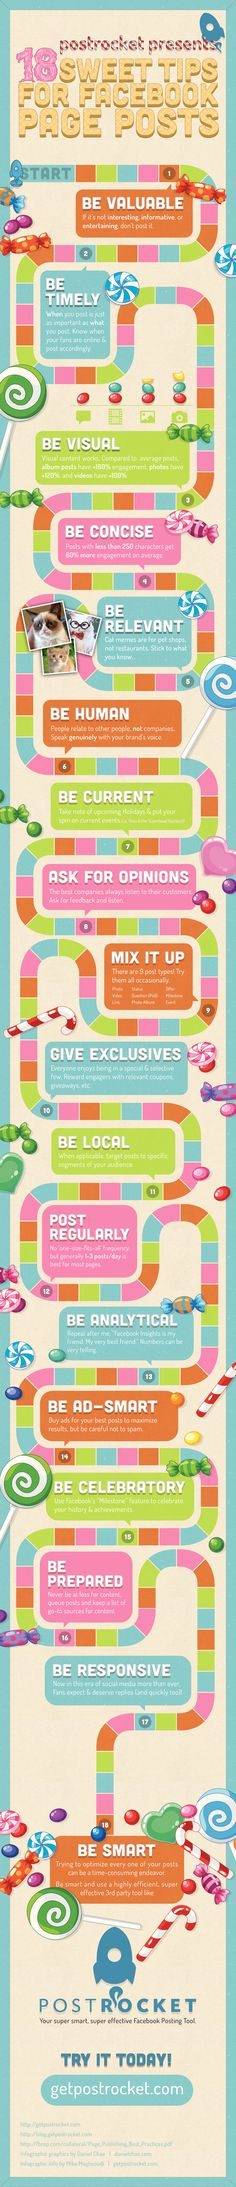 18 sweet tips for FaceBook page posts #infographic